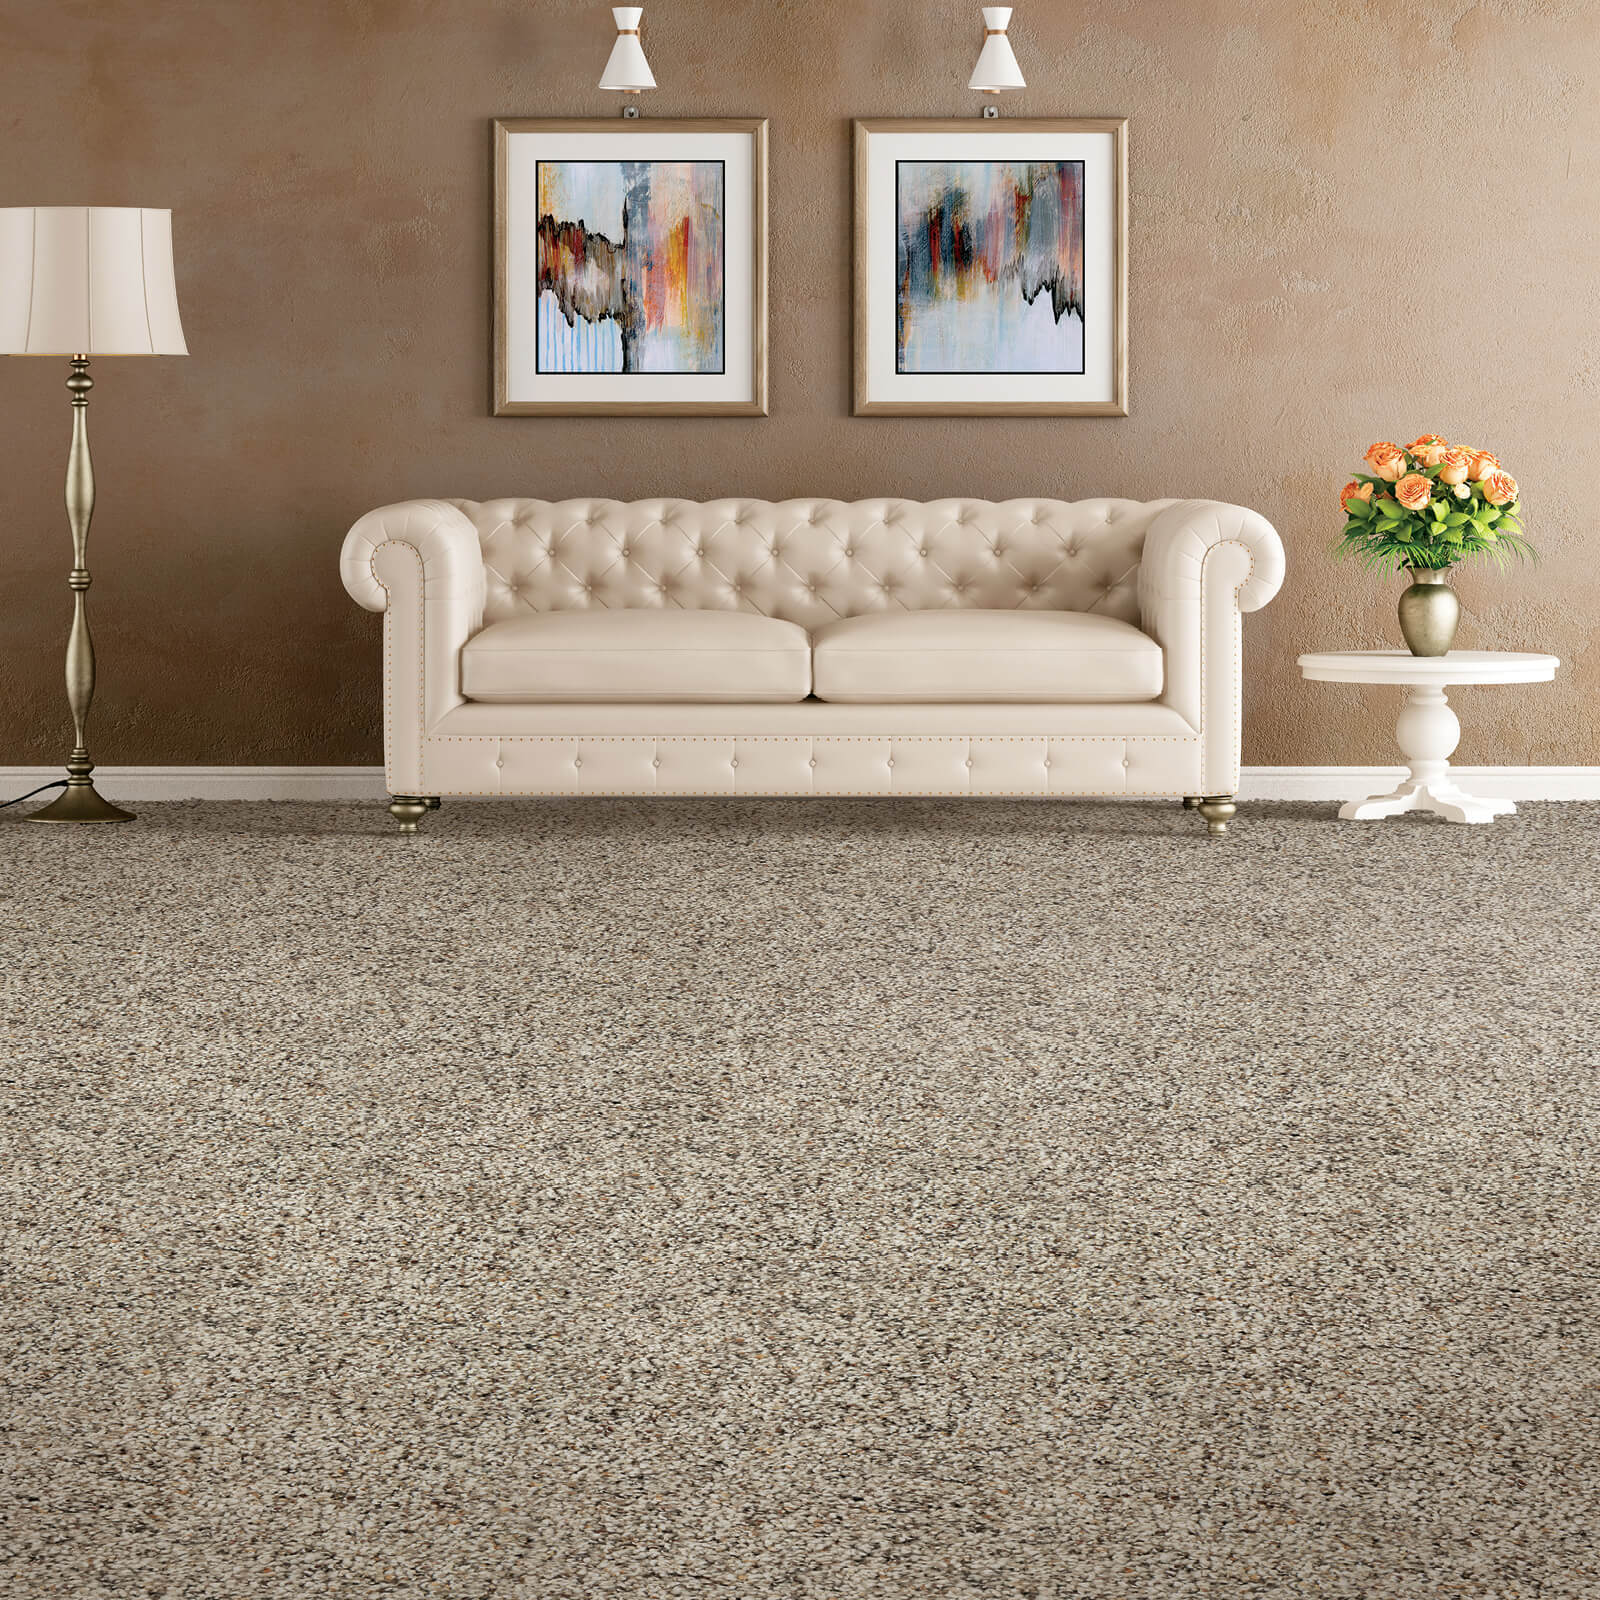 Carpet flooring | Floorida Floors